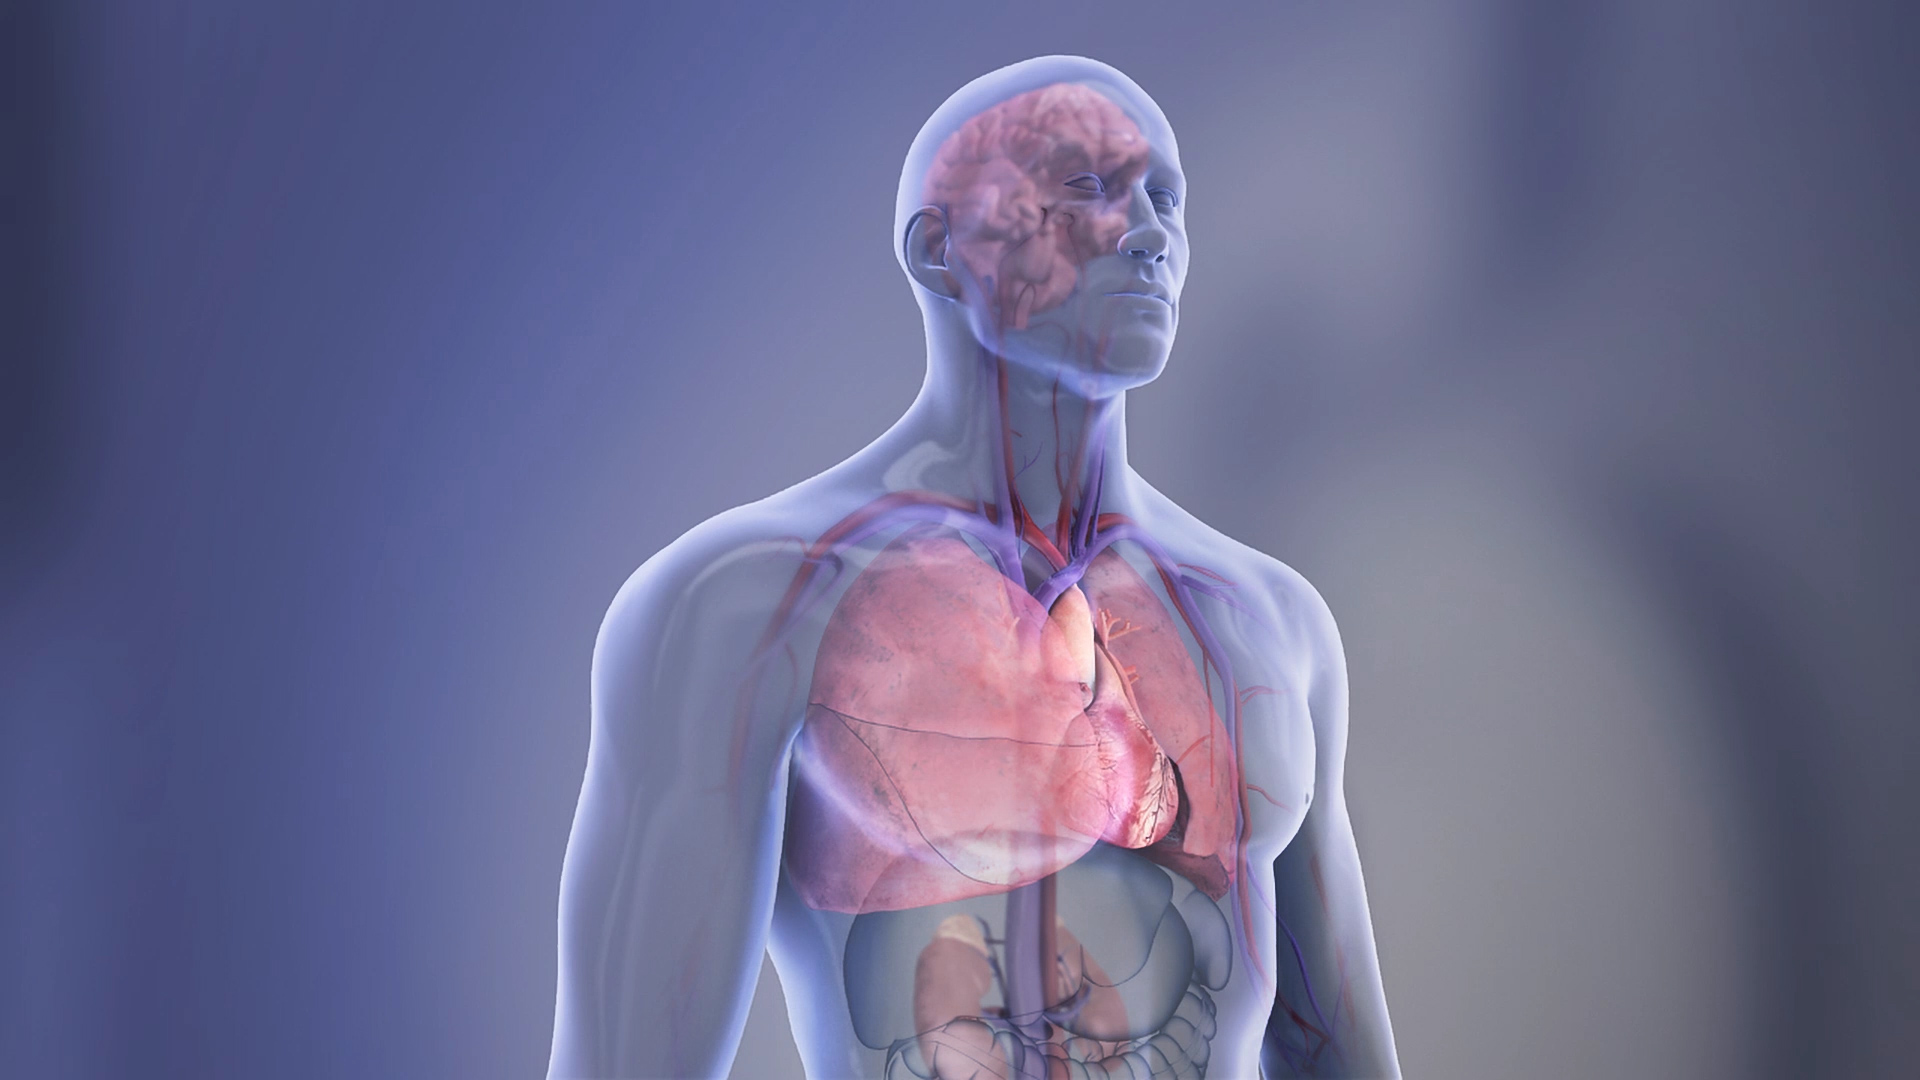 Picture shows Organs in a transparent body illustration.